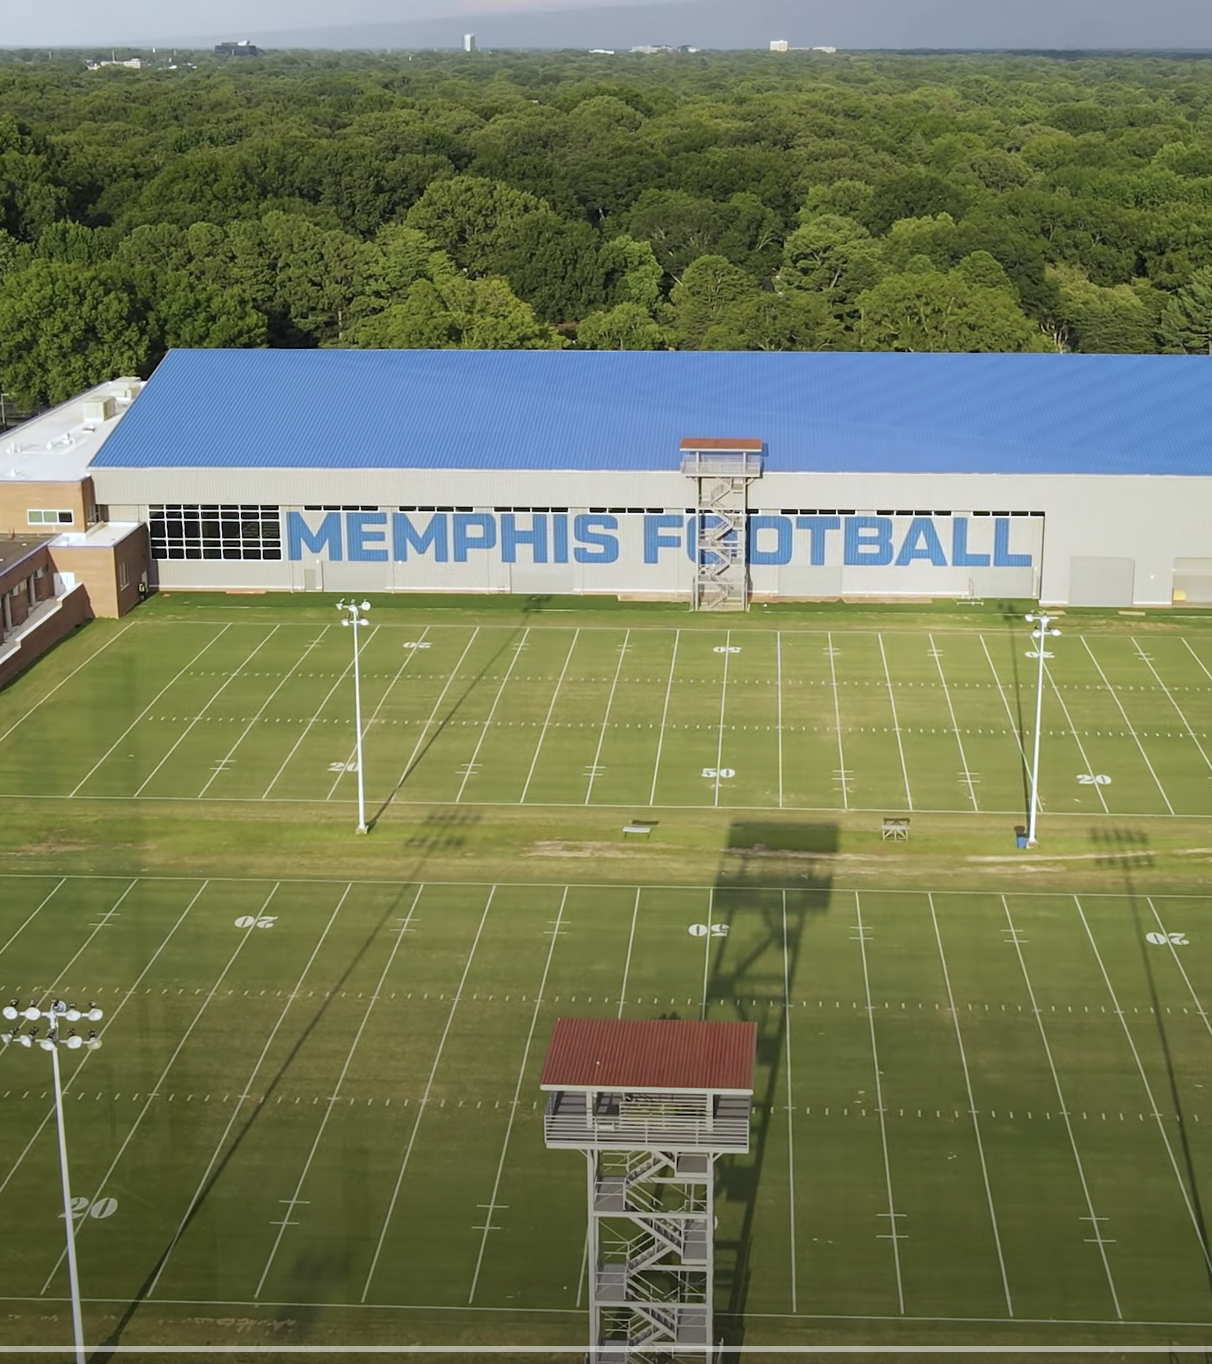 Completed Memphis Football practice facility with blue roof, gray sides, and two practice football fields to the side.